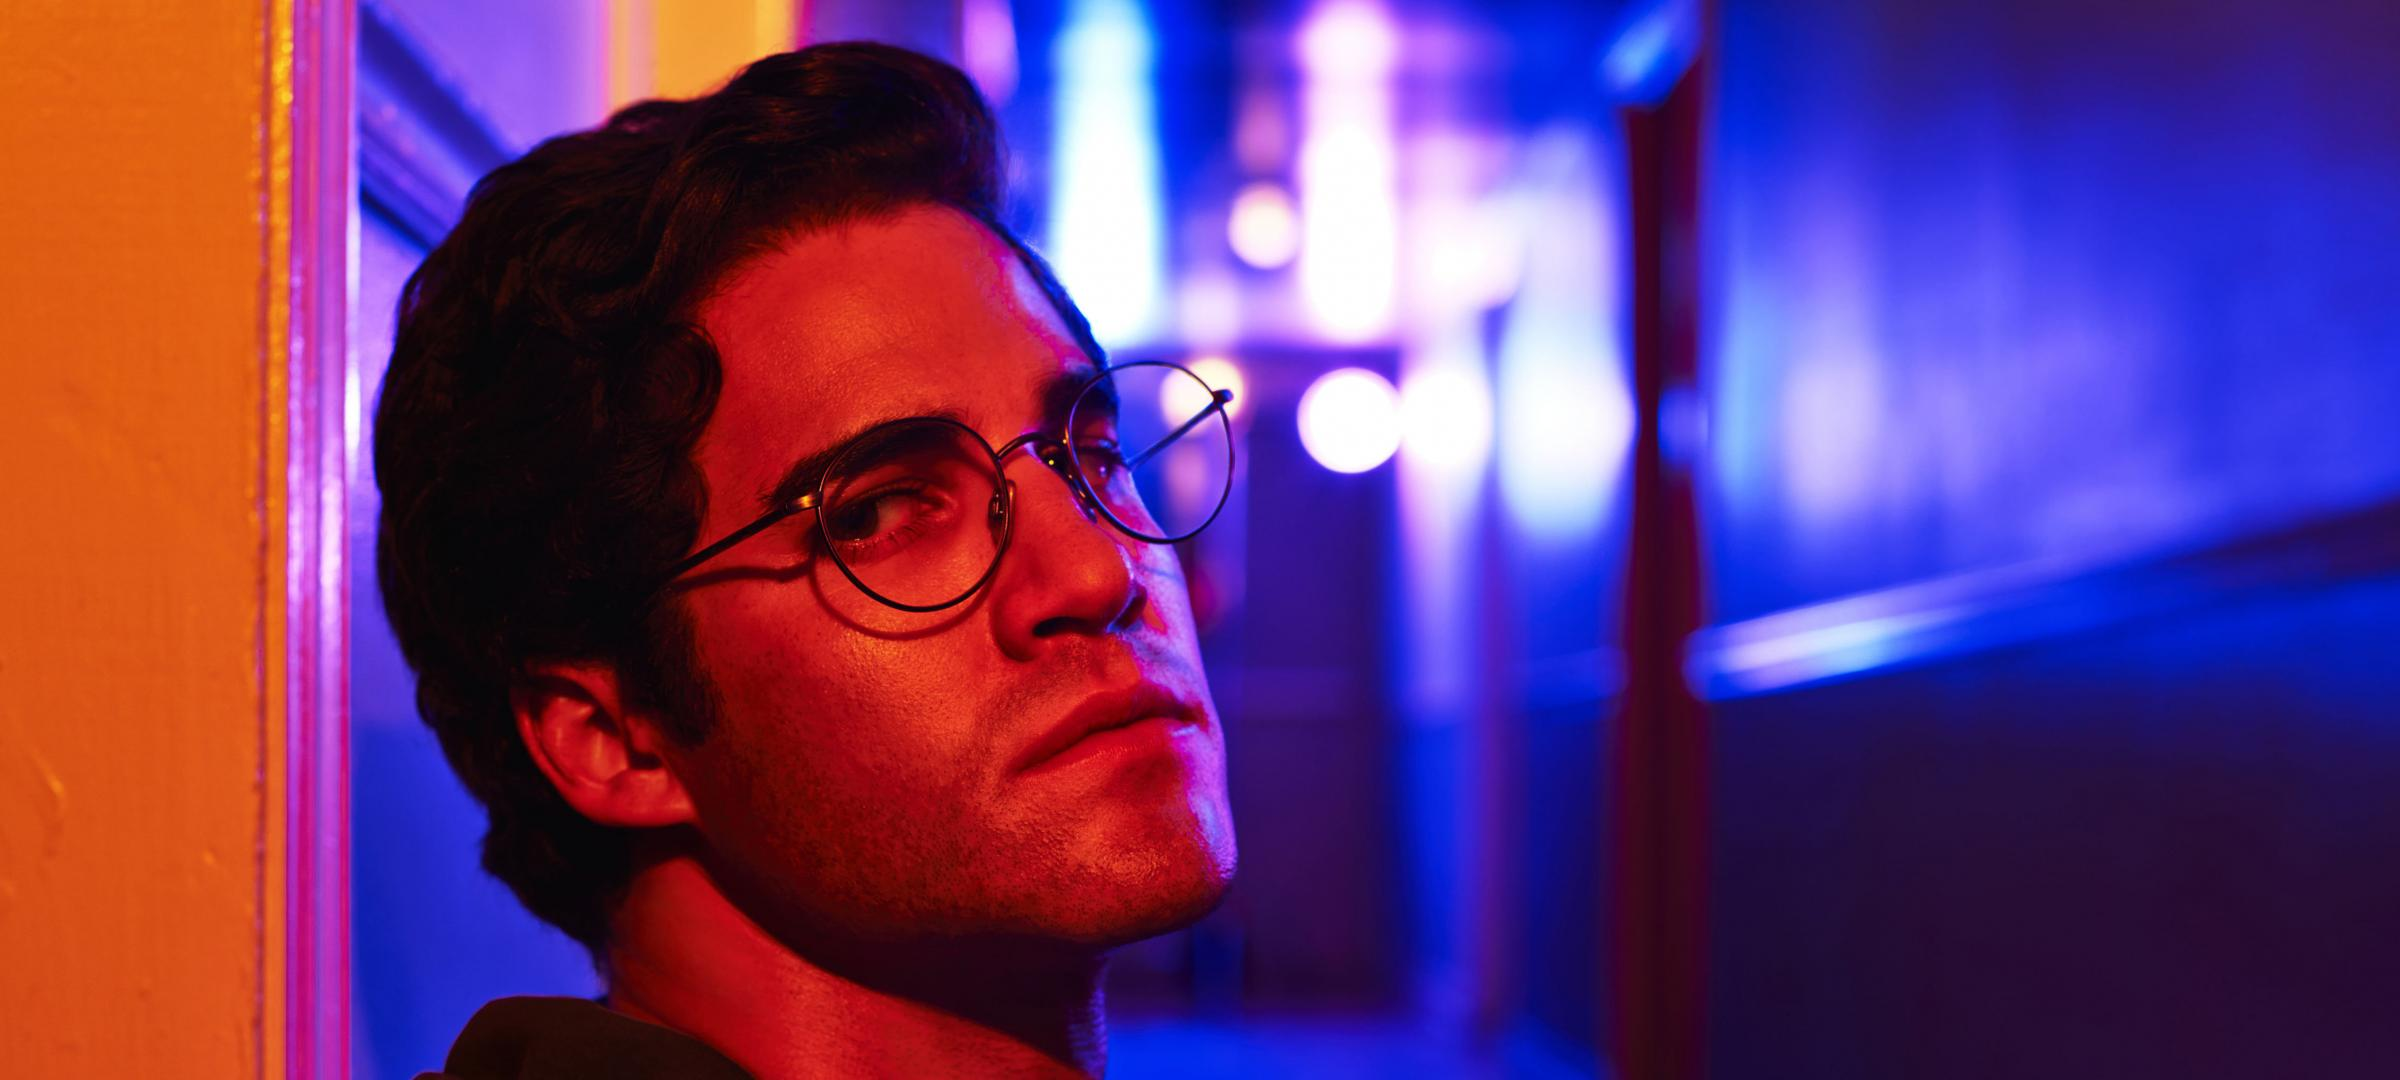 Andrew Cunanan arrives in Miami in The Assassination of Gianni Versace: American Crime Story